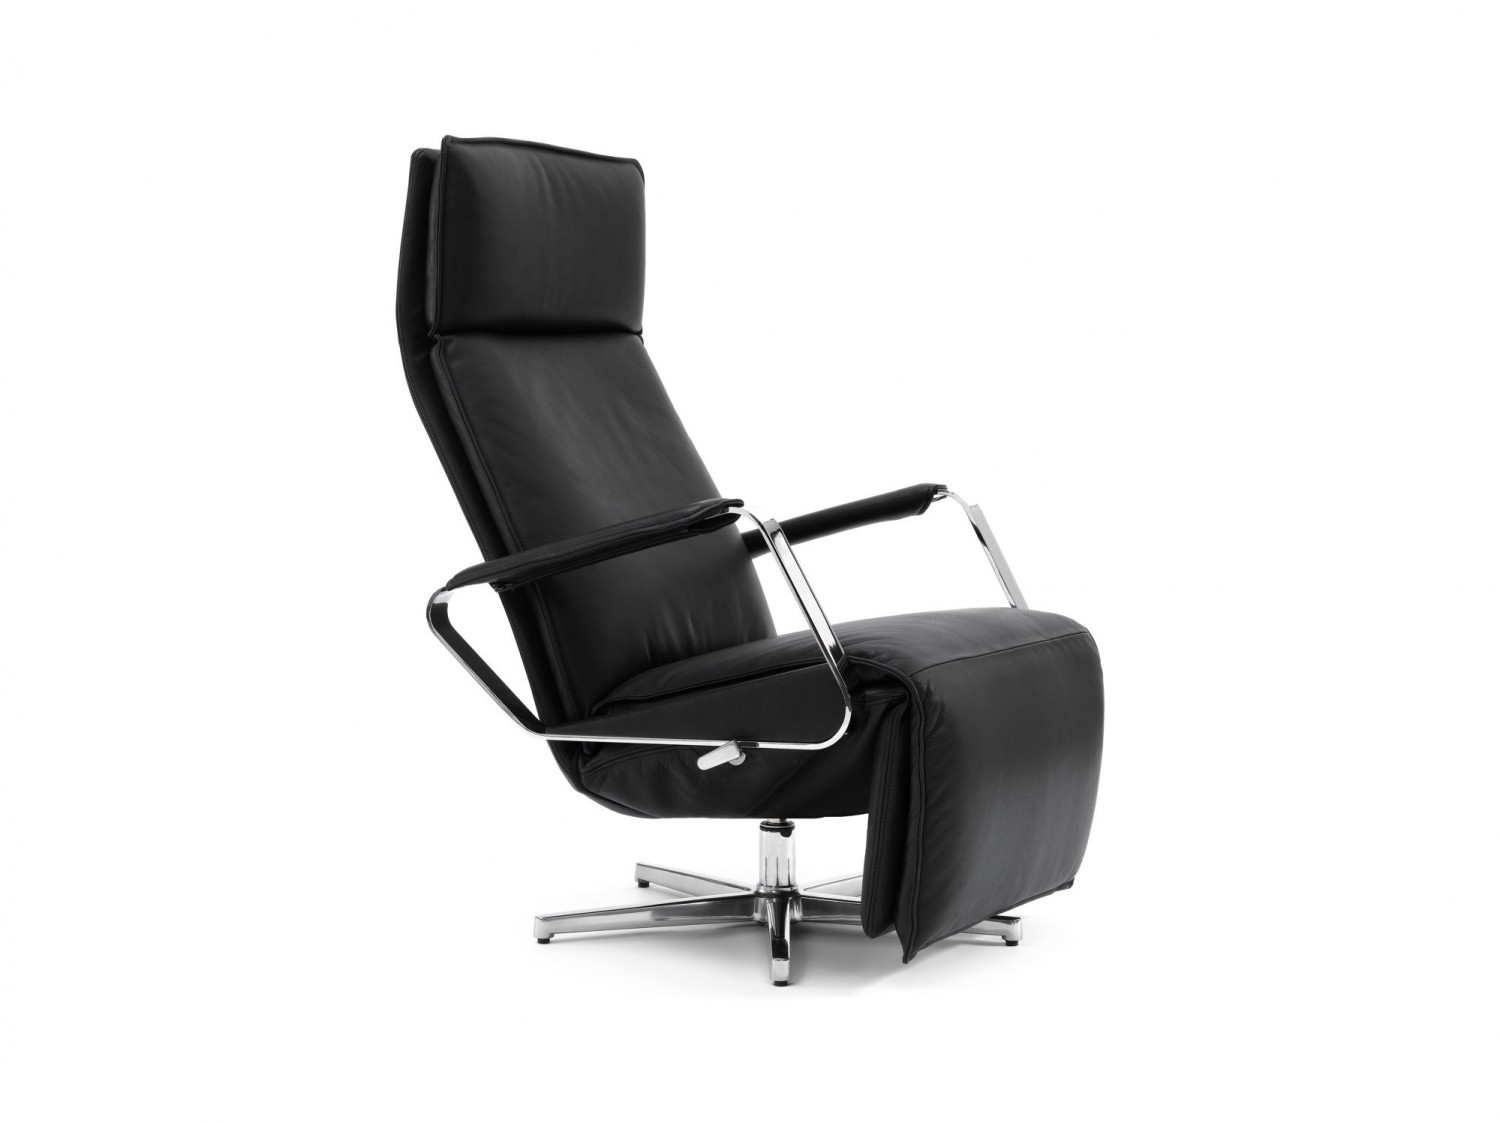 Durlet - largo relax - black lounge chair